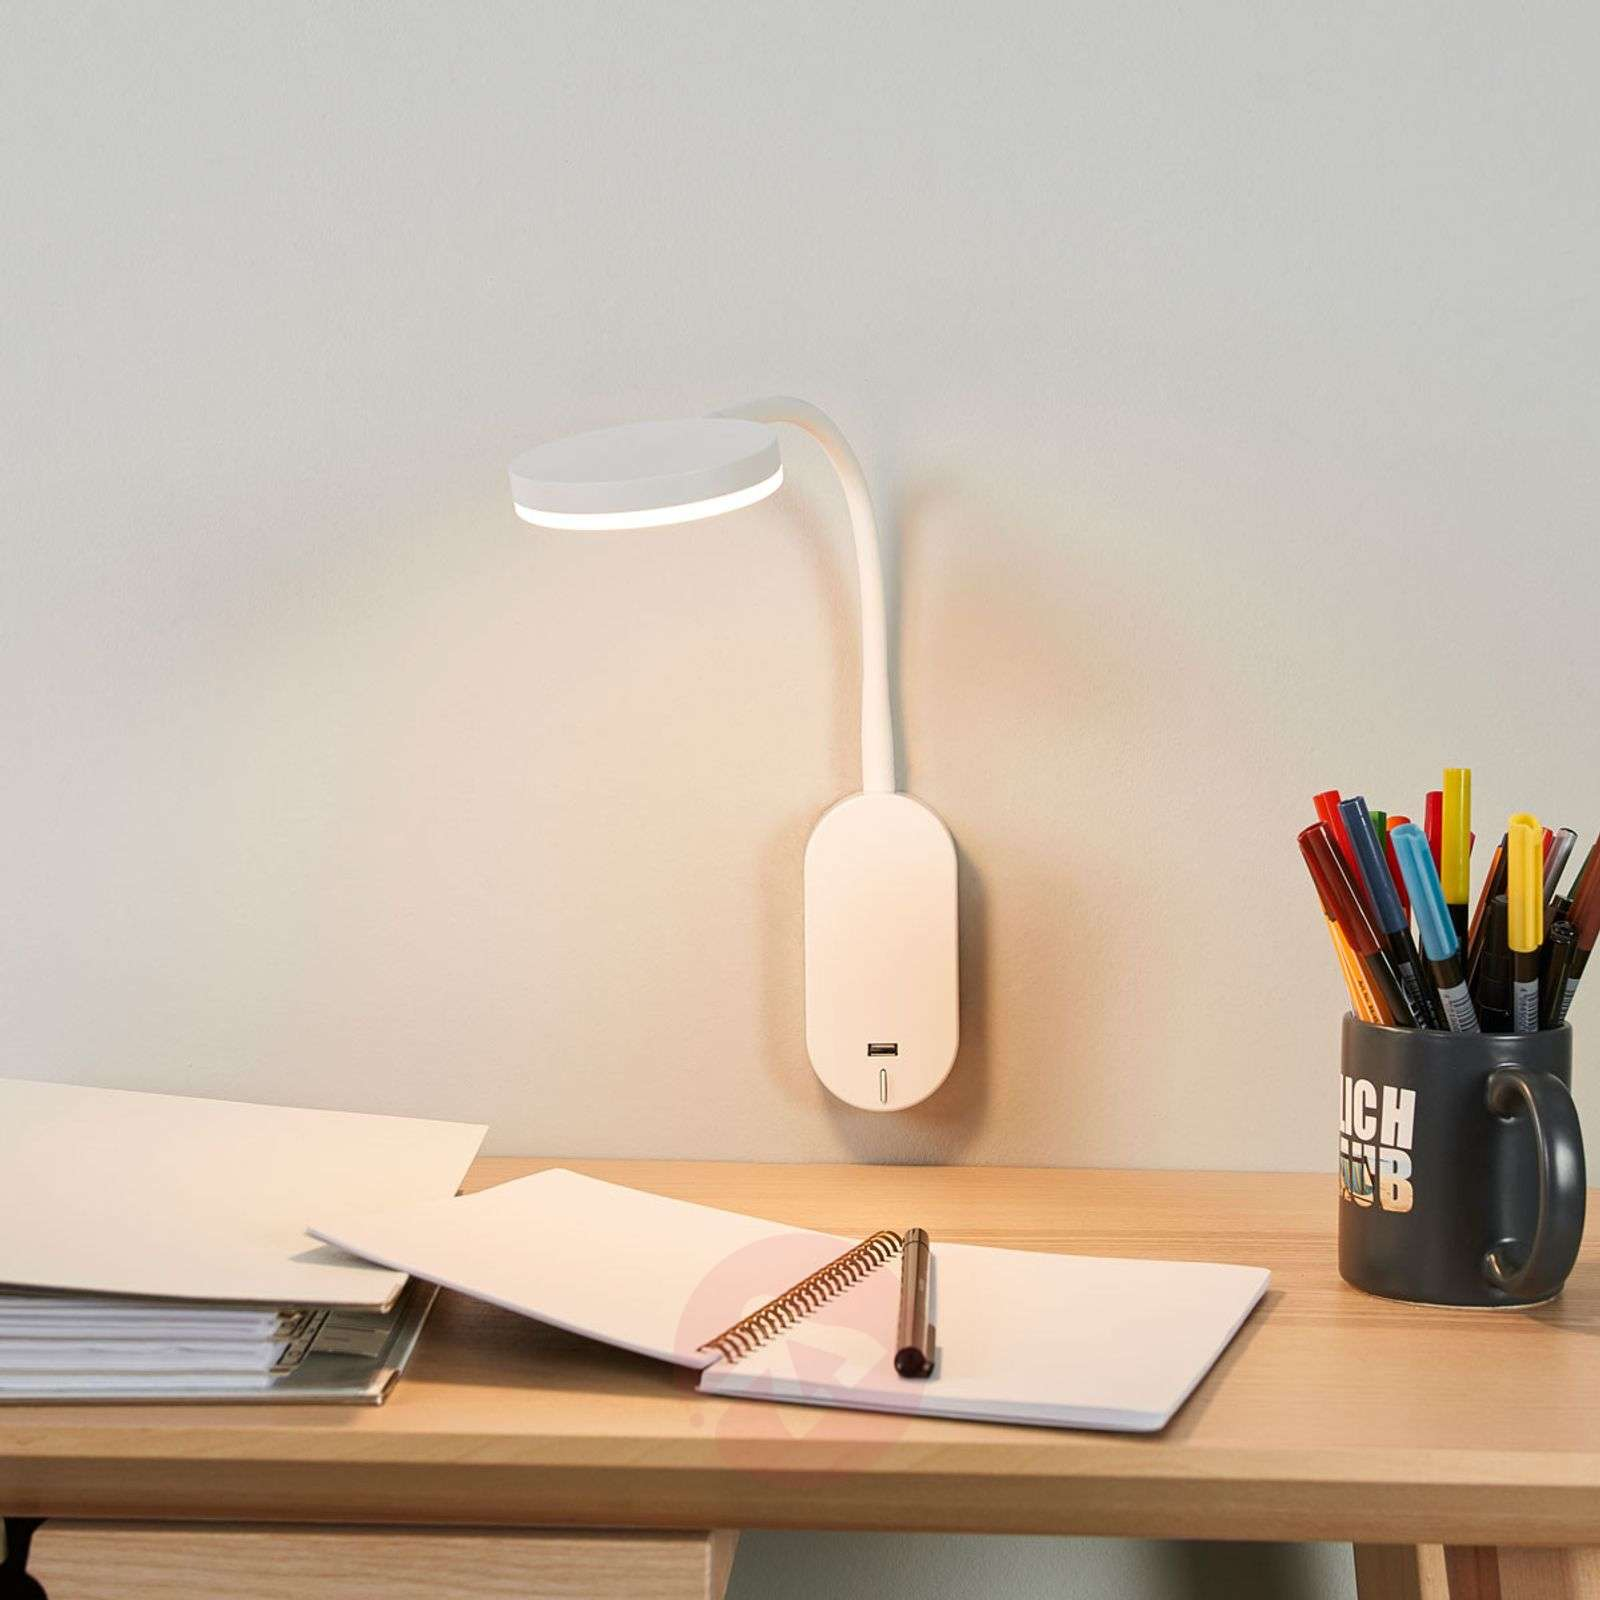 Applique LED avec bras flexible Milow, USB-9643030-01